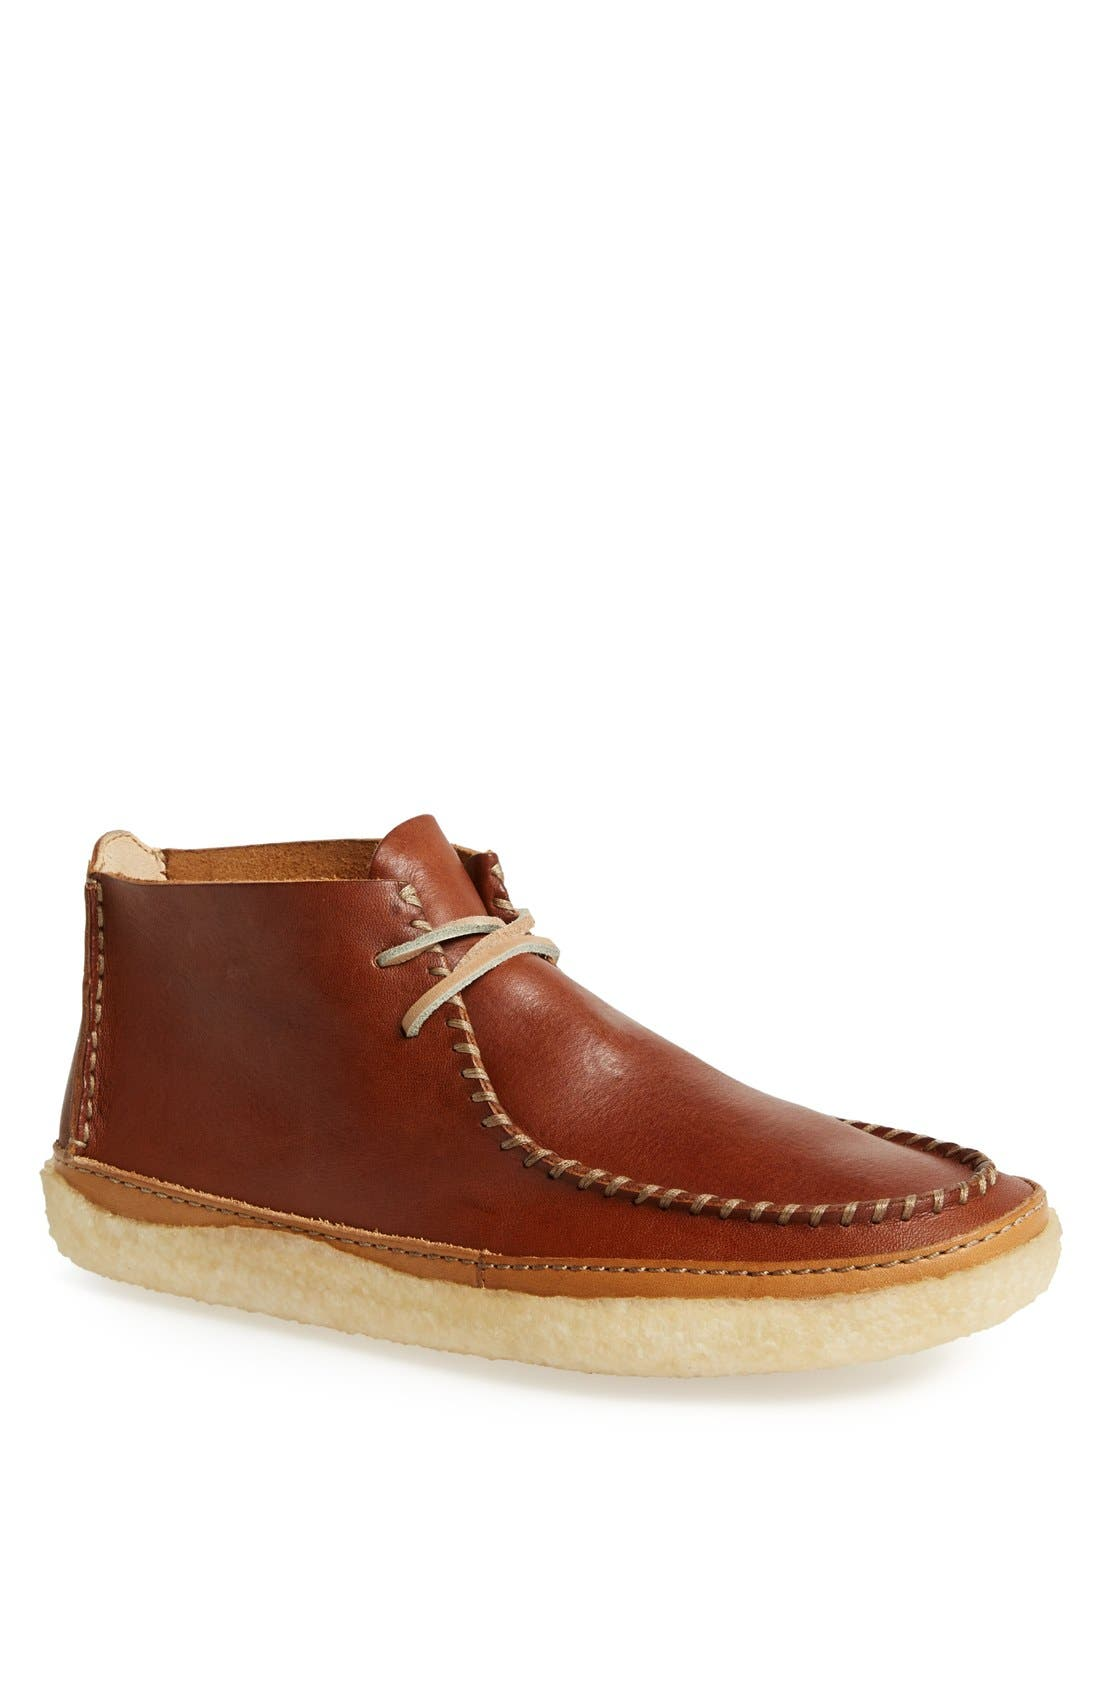 Main Image - Clarks® Originals 'Vulco Spear' Chukka Boot (Men)